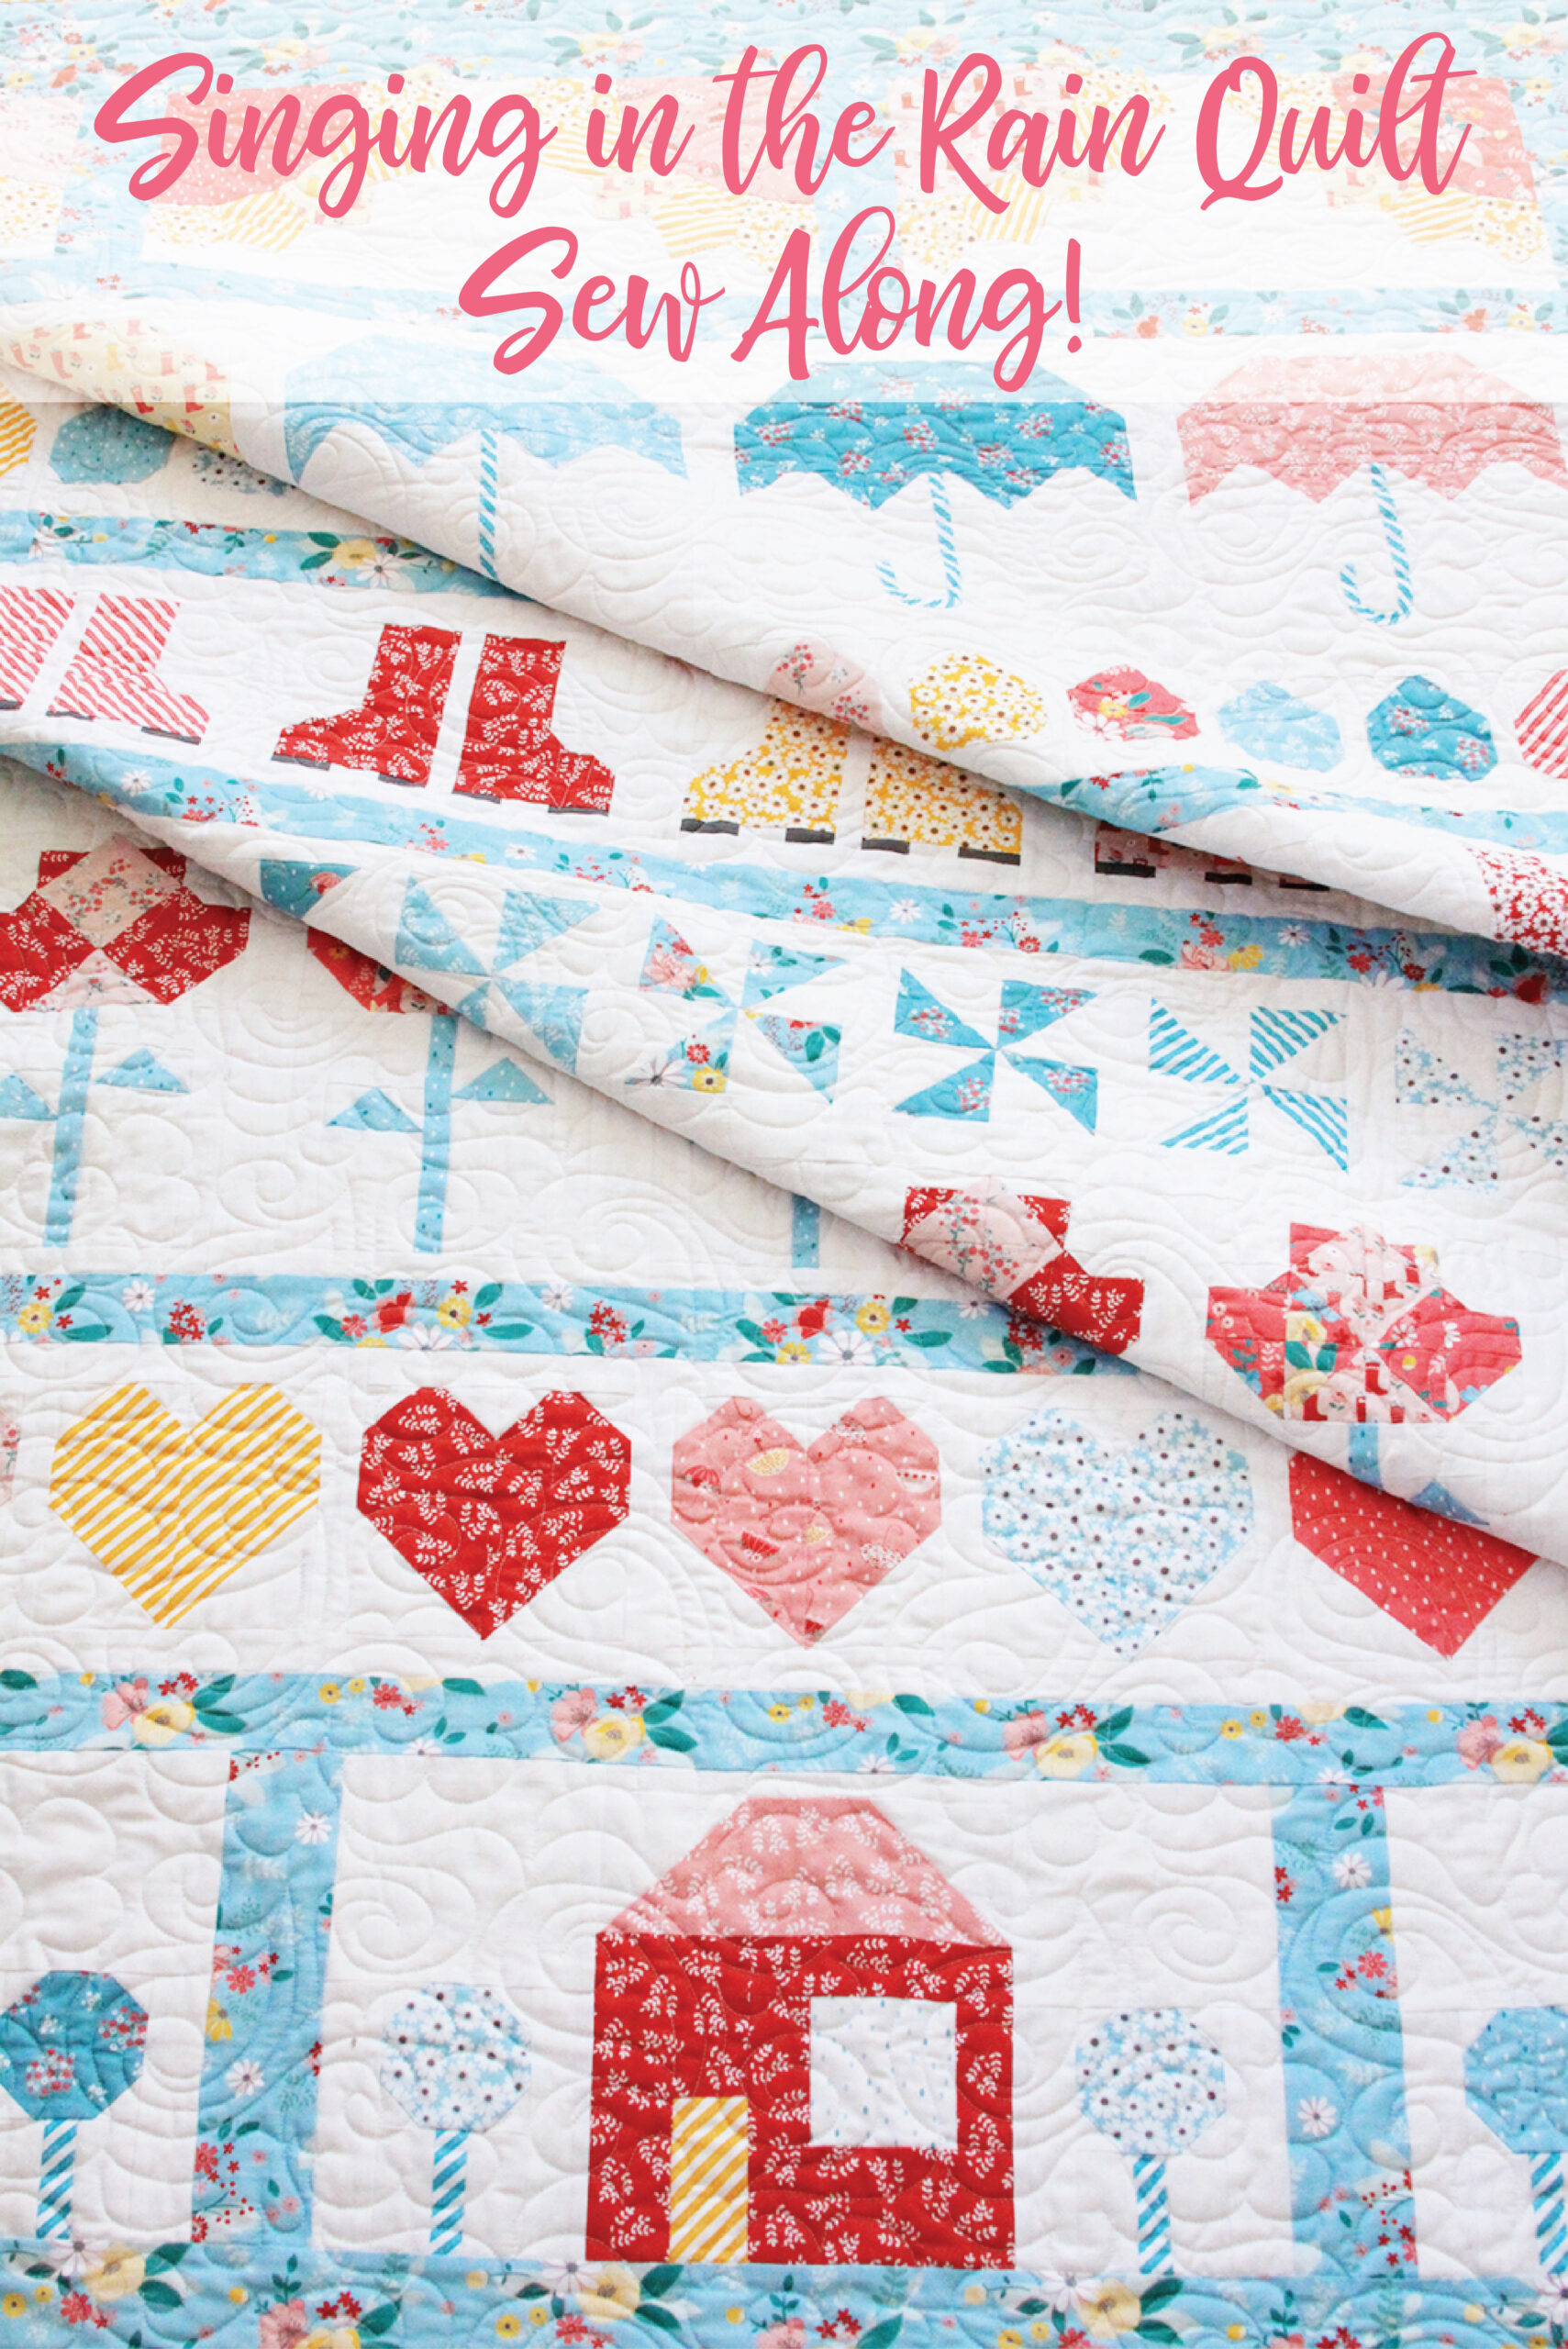 Singing in the Rain Quilt Sew Along